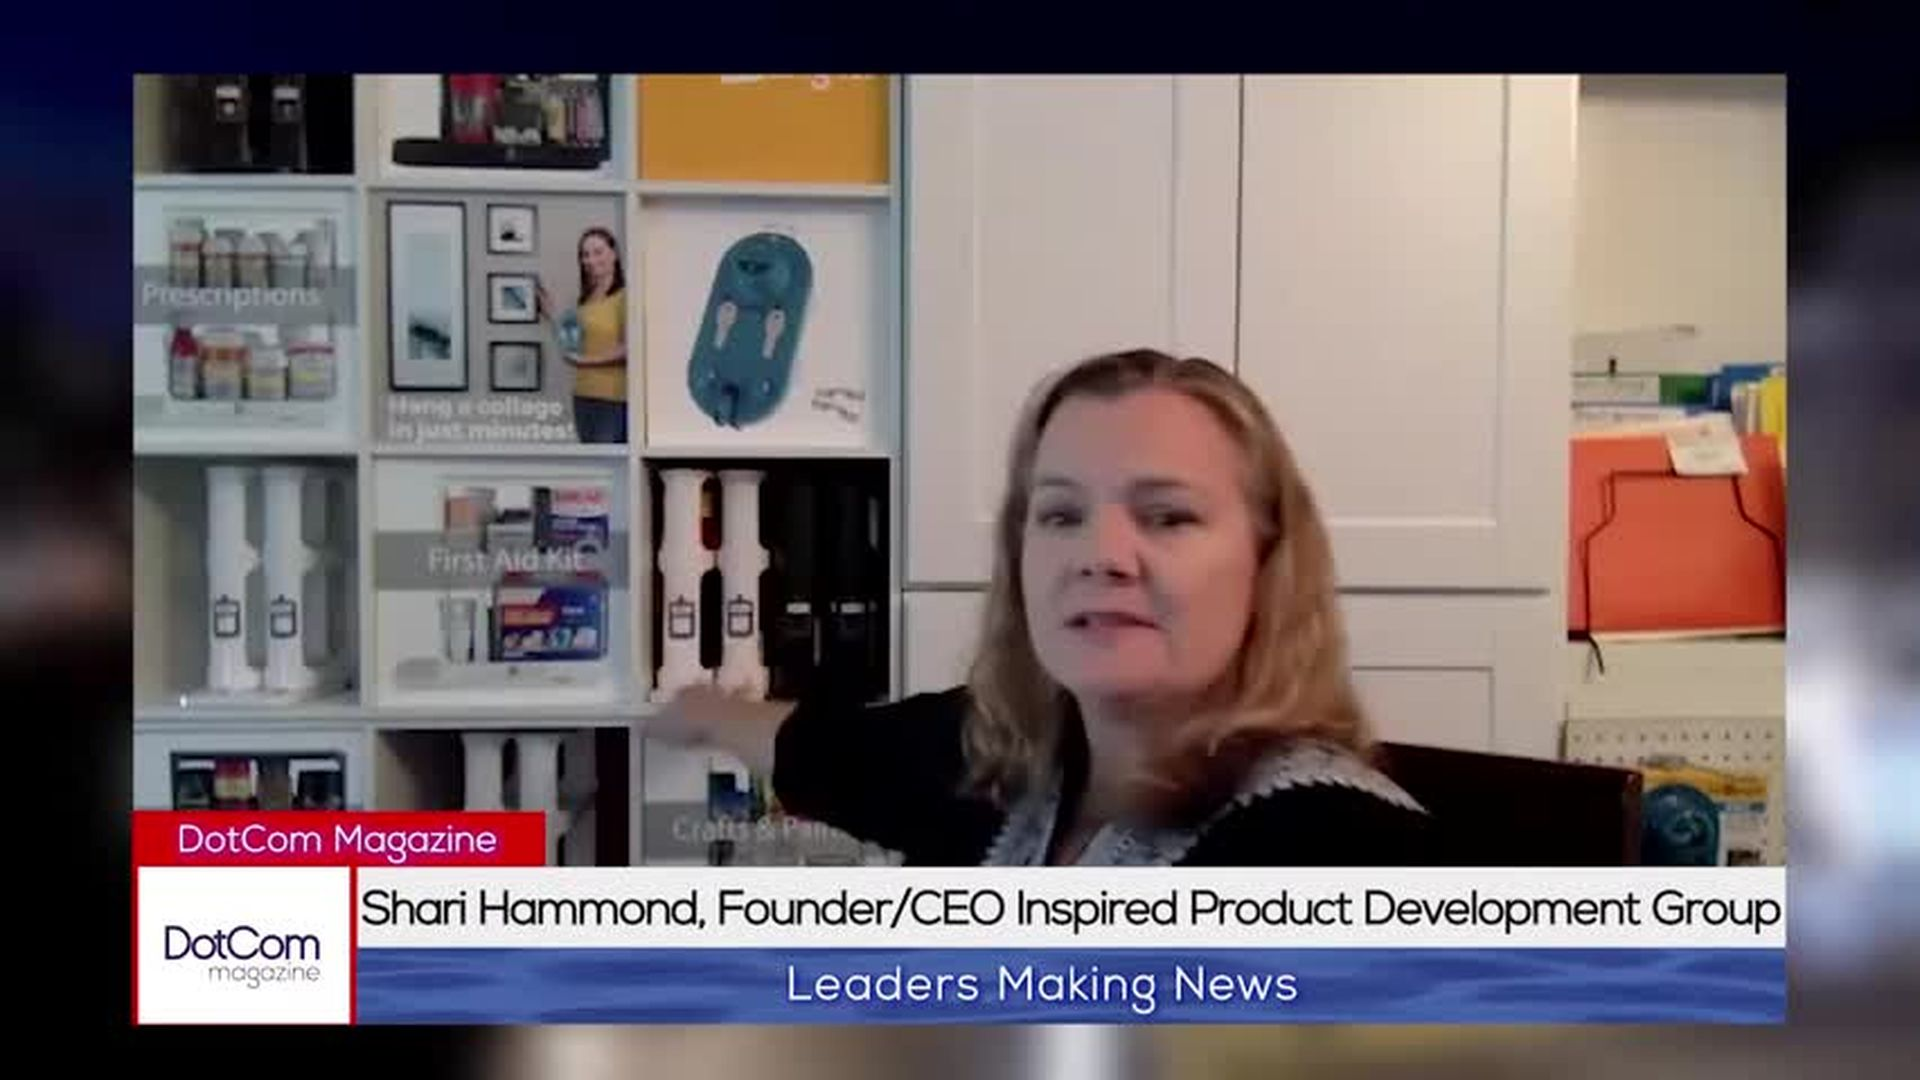 Shari Hammond, CEO/Founder of Inspired Product Development Group. A DotCom Magazine Interview.